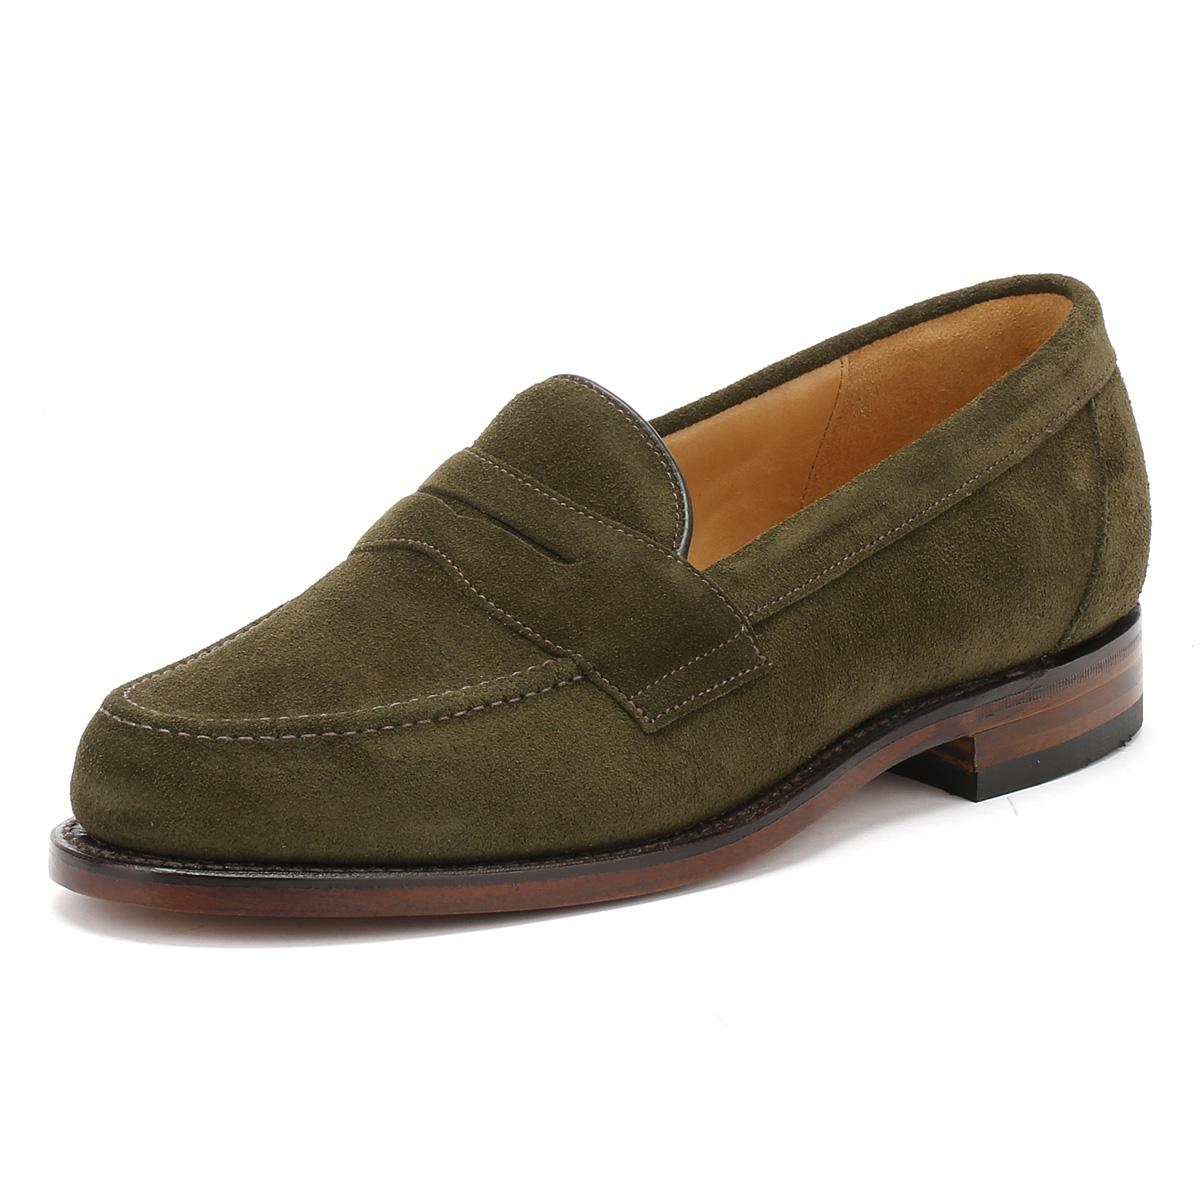 73e02c3245ab0 Loake Mens Green Eton Suede Loafers in Green for Men - Lyst